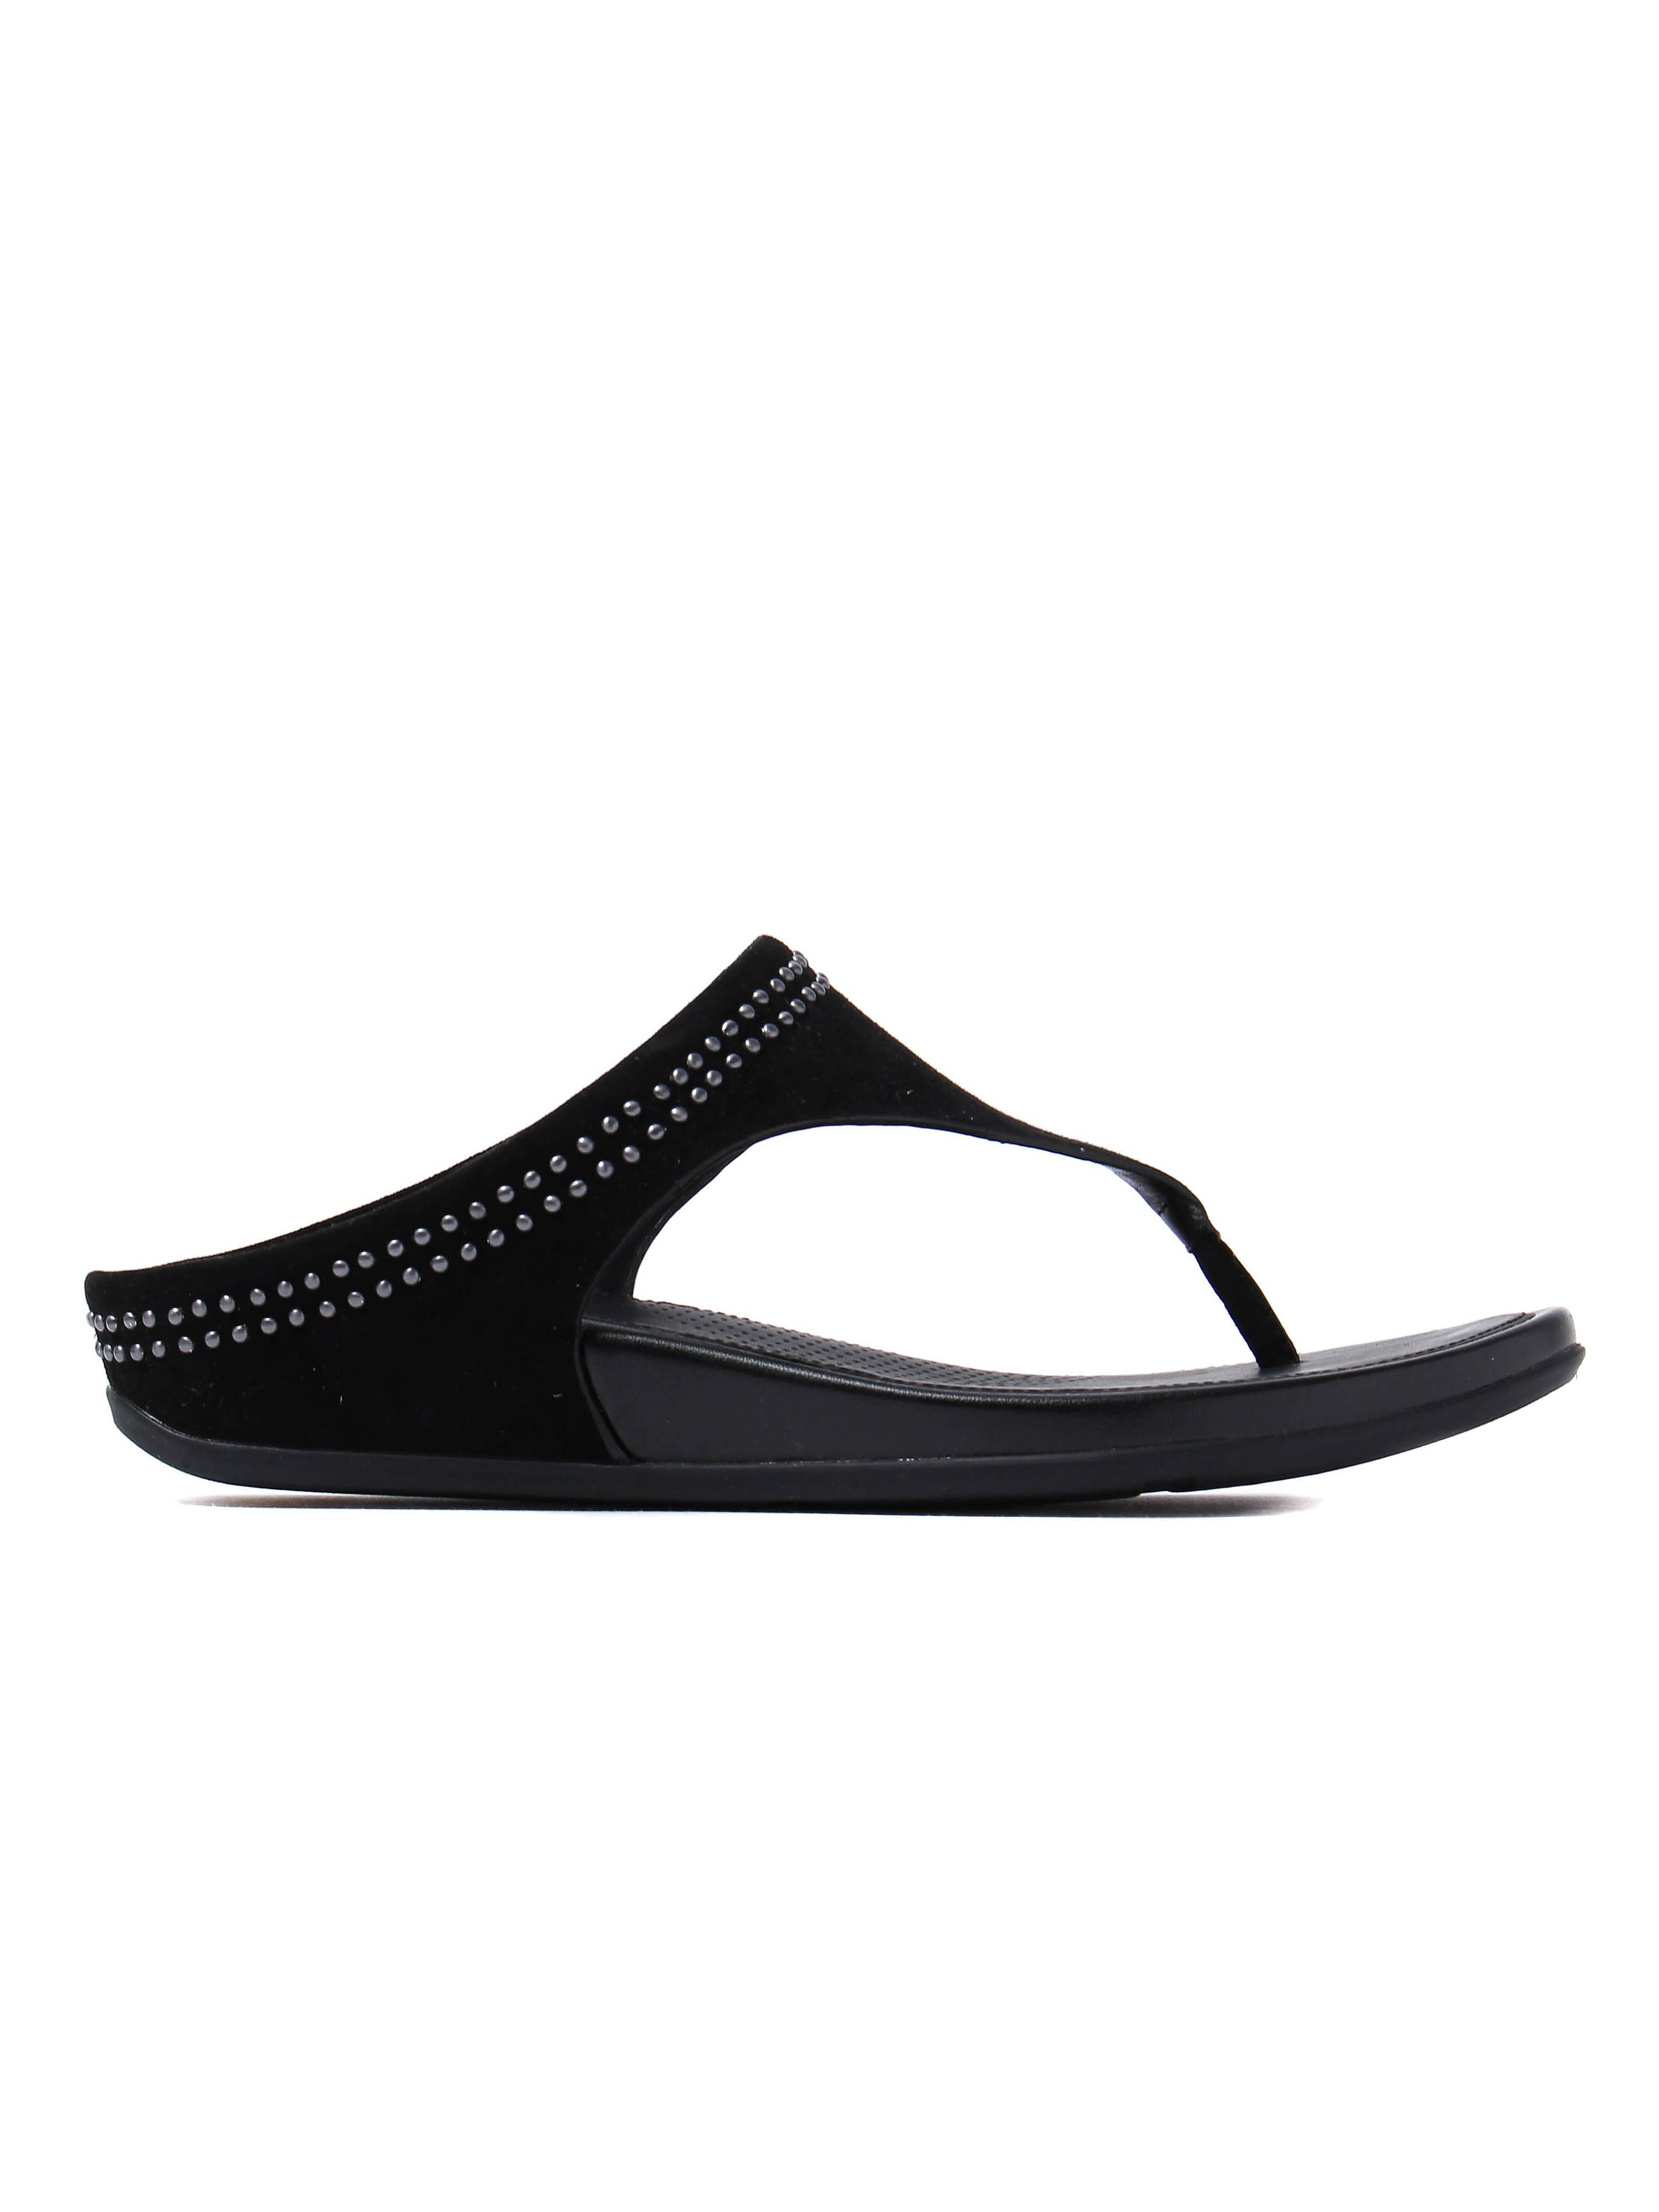 FitFlop Women's Banda Suede Toe-Post Sandals - Black